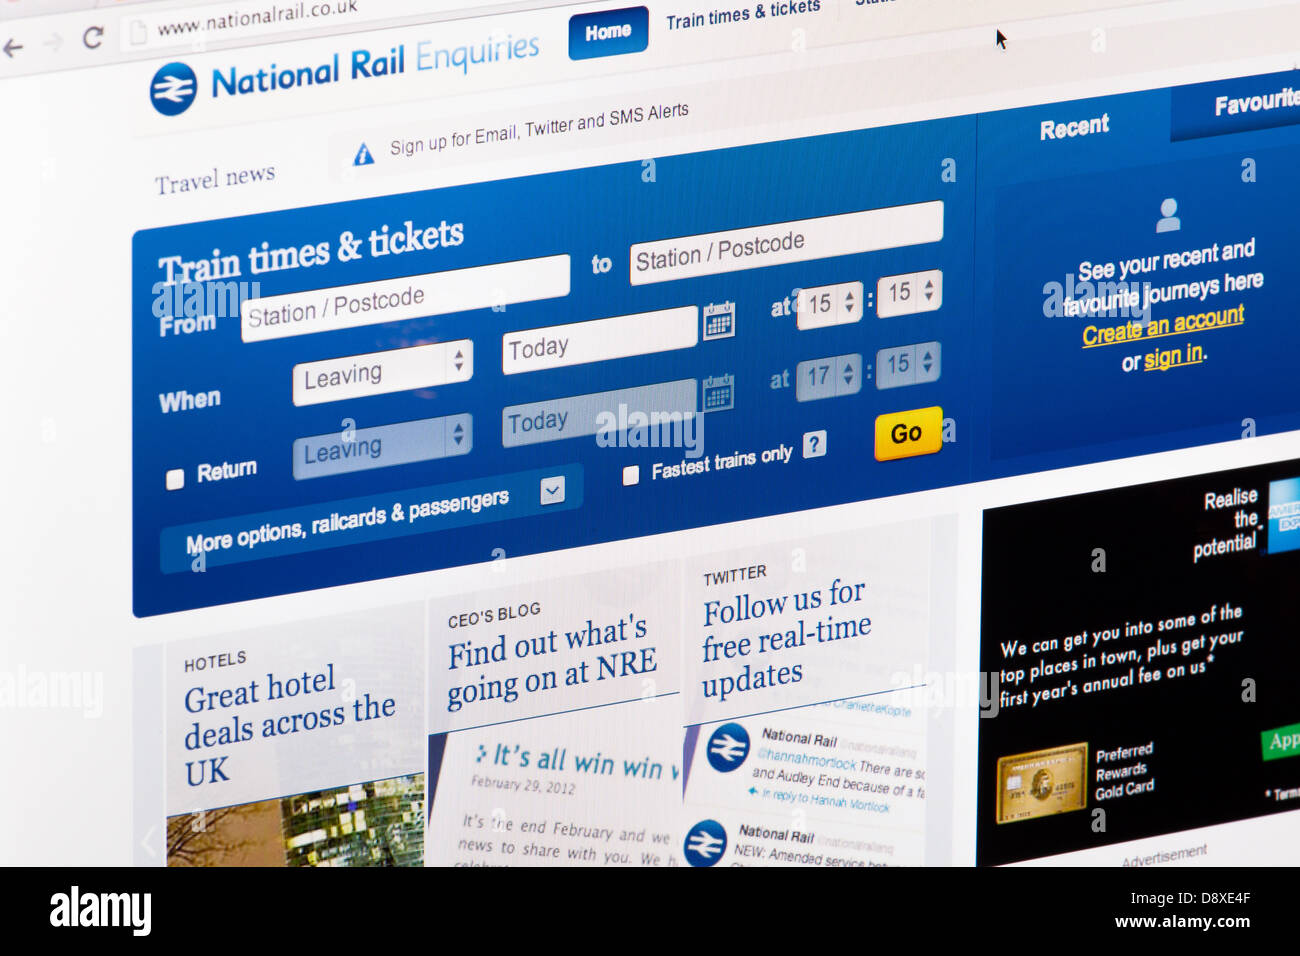 National Rail Ticket Enquiries Website or web page on a laptop screen or computer monitor - Stock Image